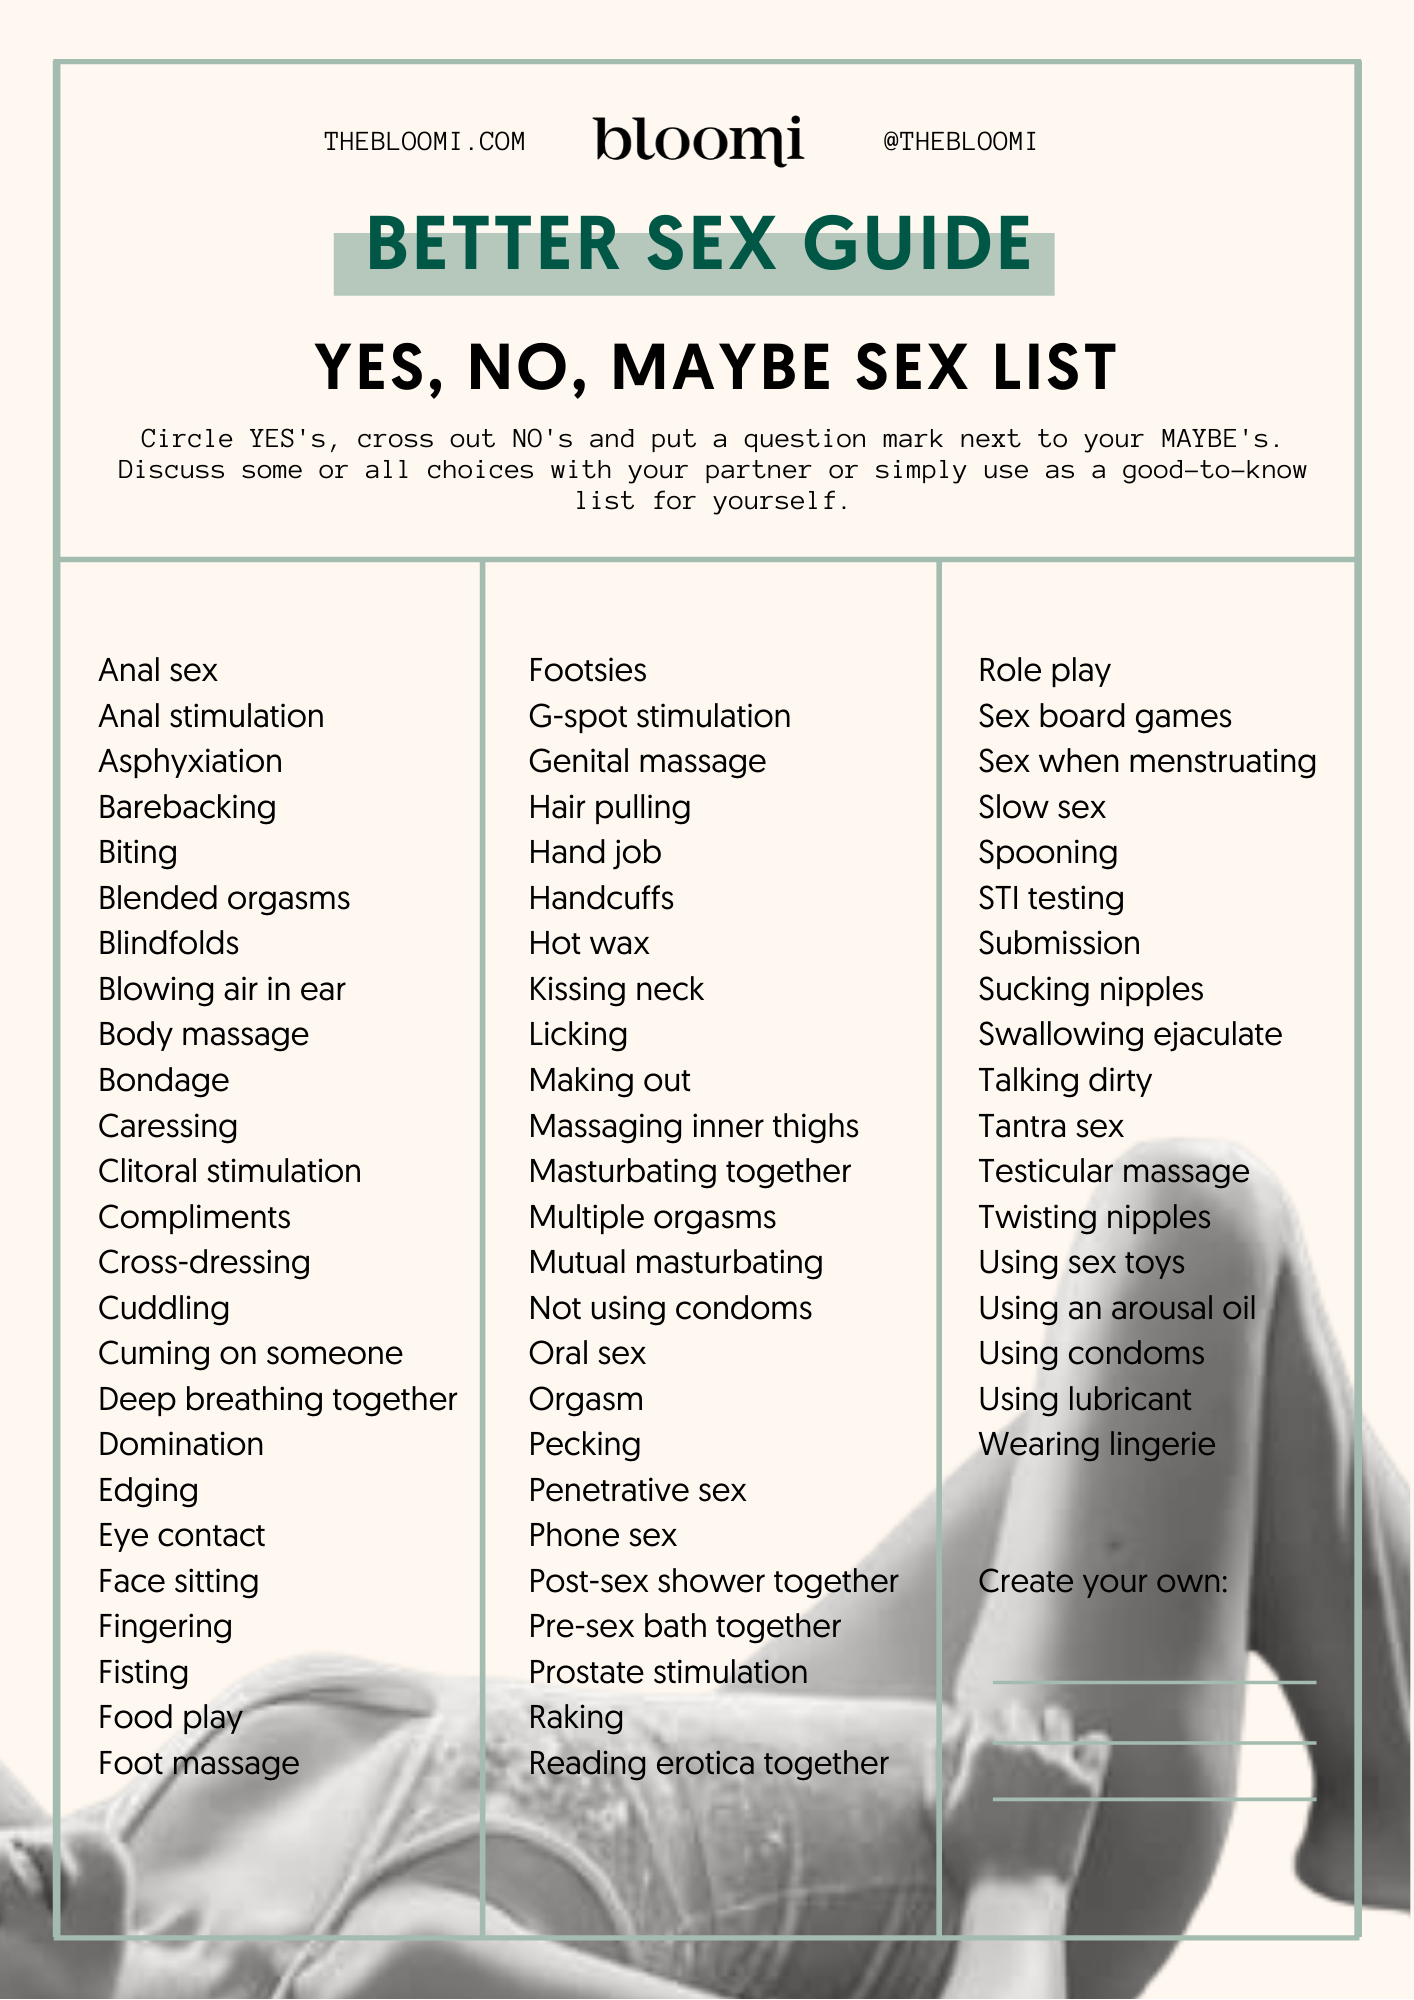 Bloomis better sex guide: yes, no, maybe list - Intimate